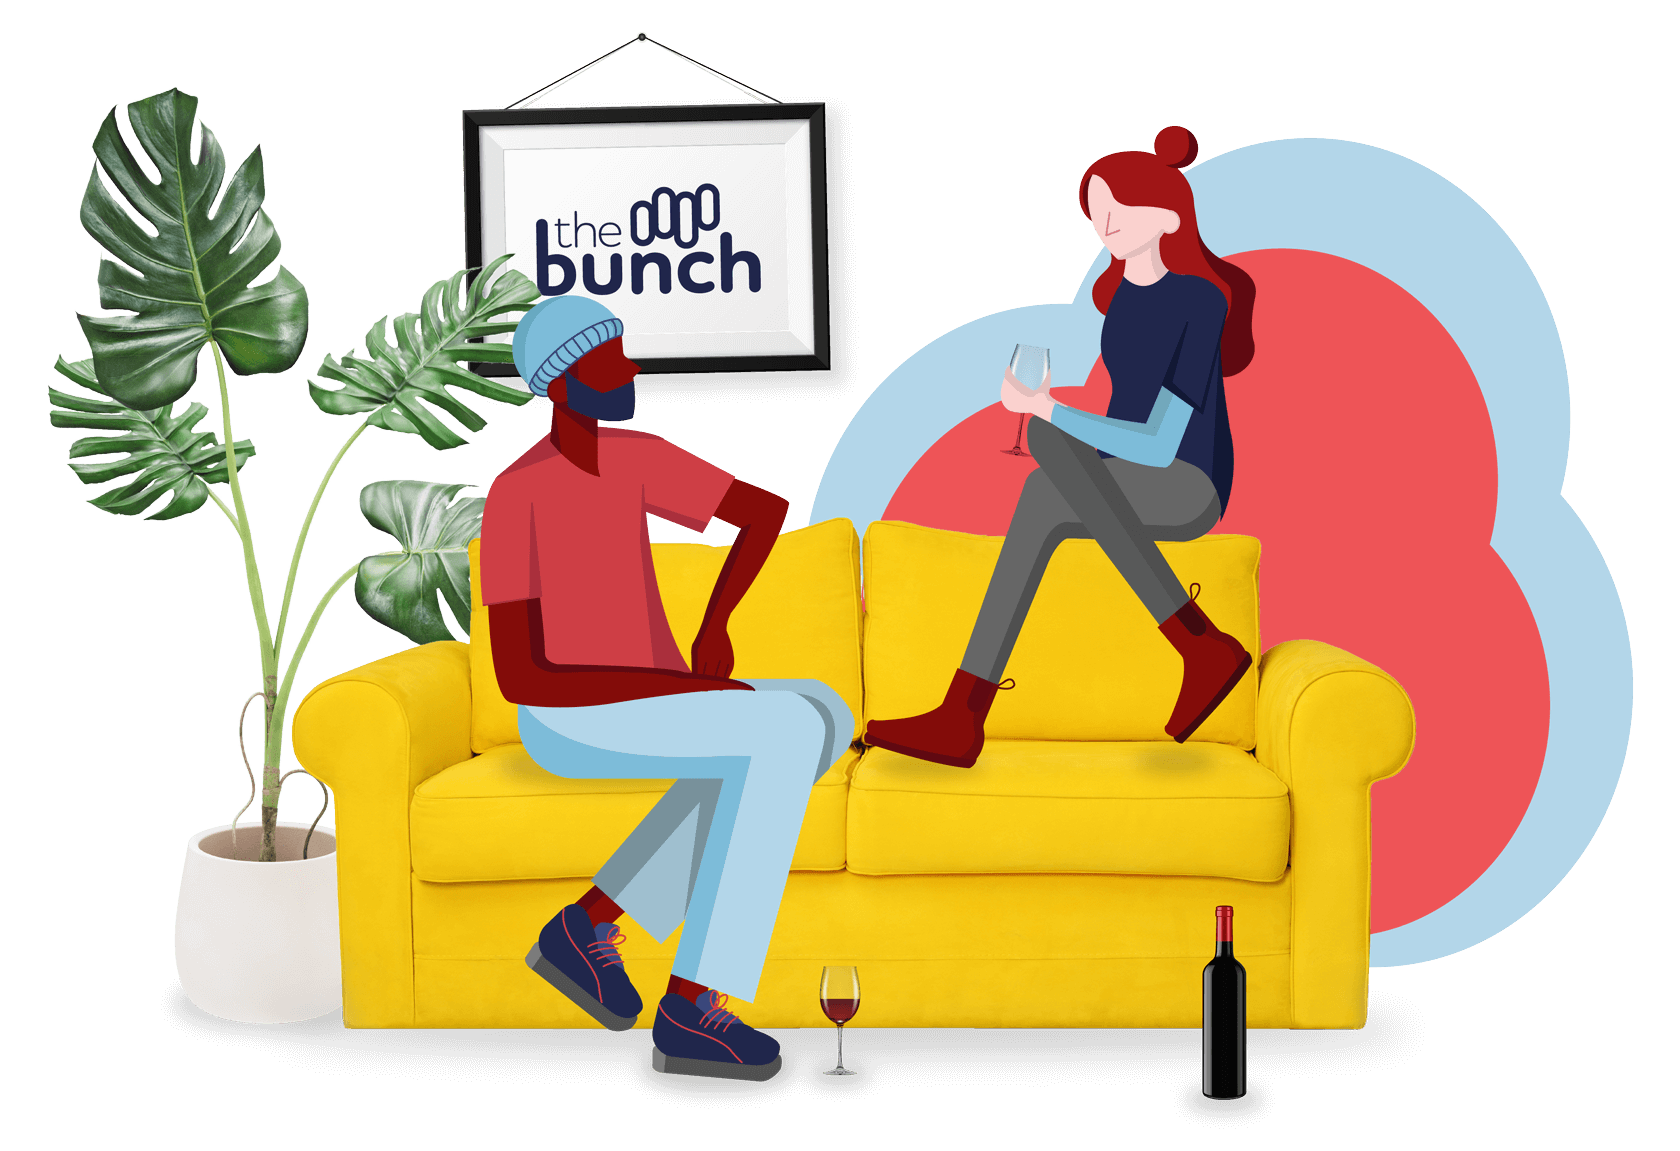 Illustration of two people chatting on a sofa